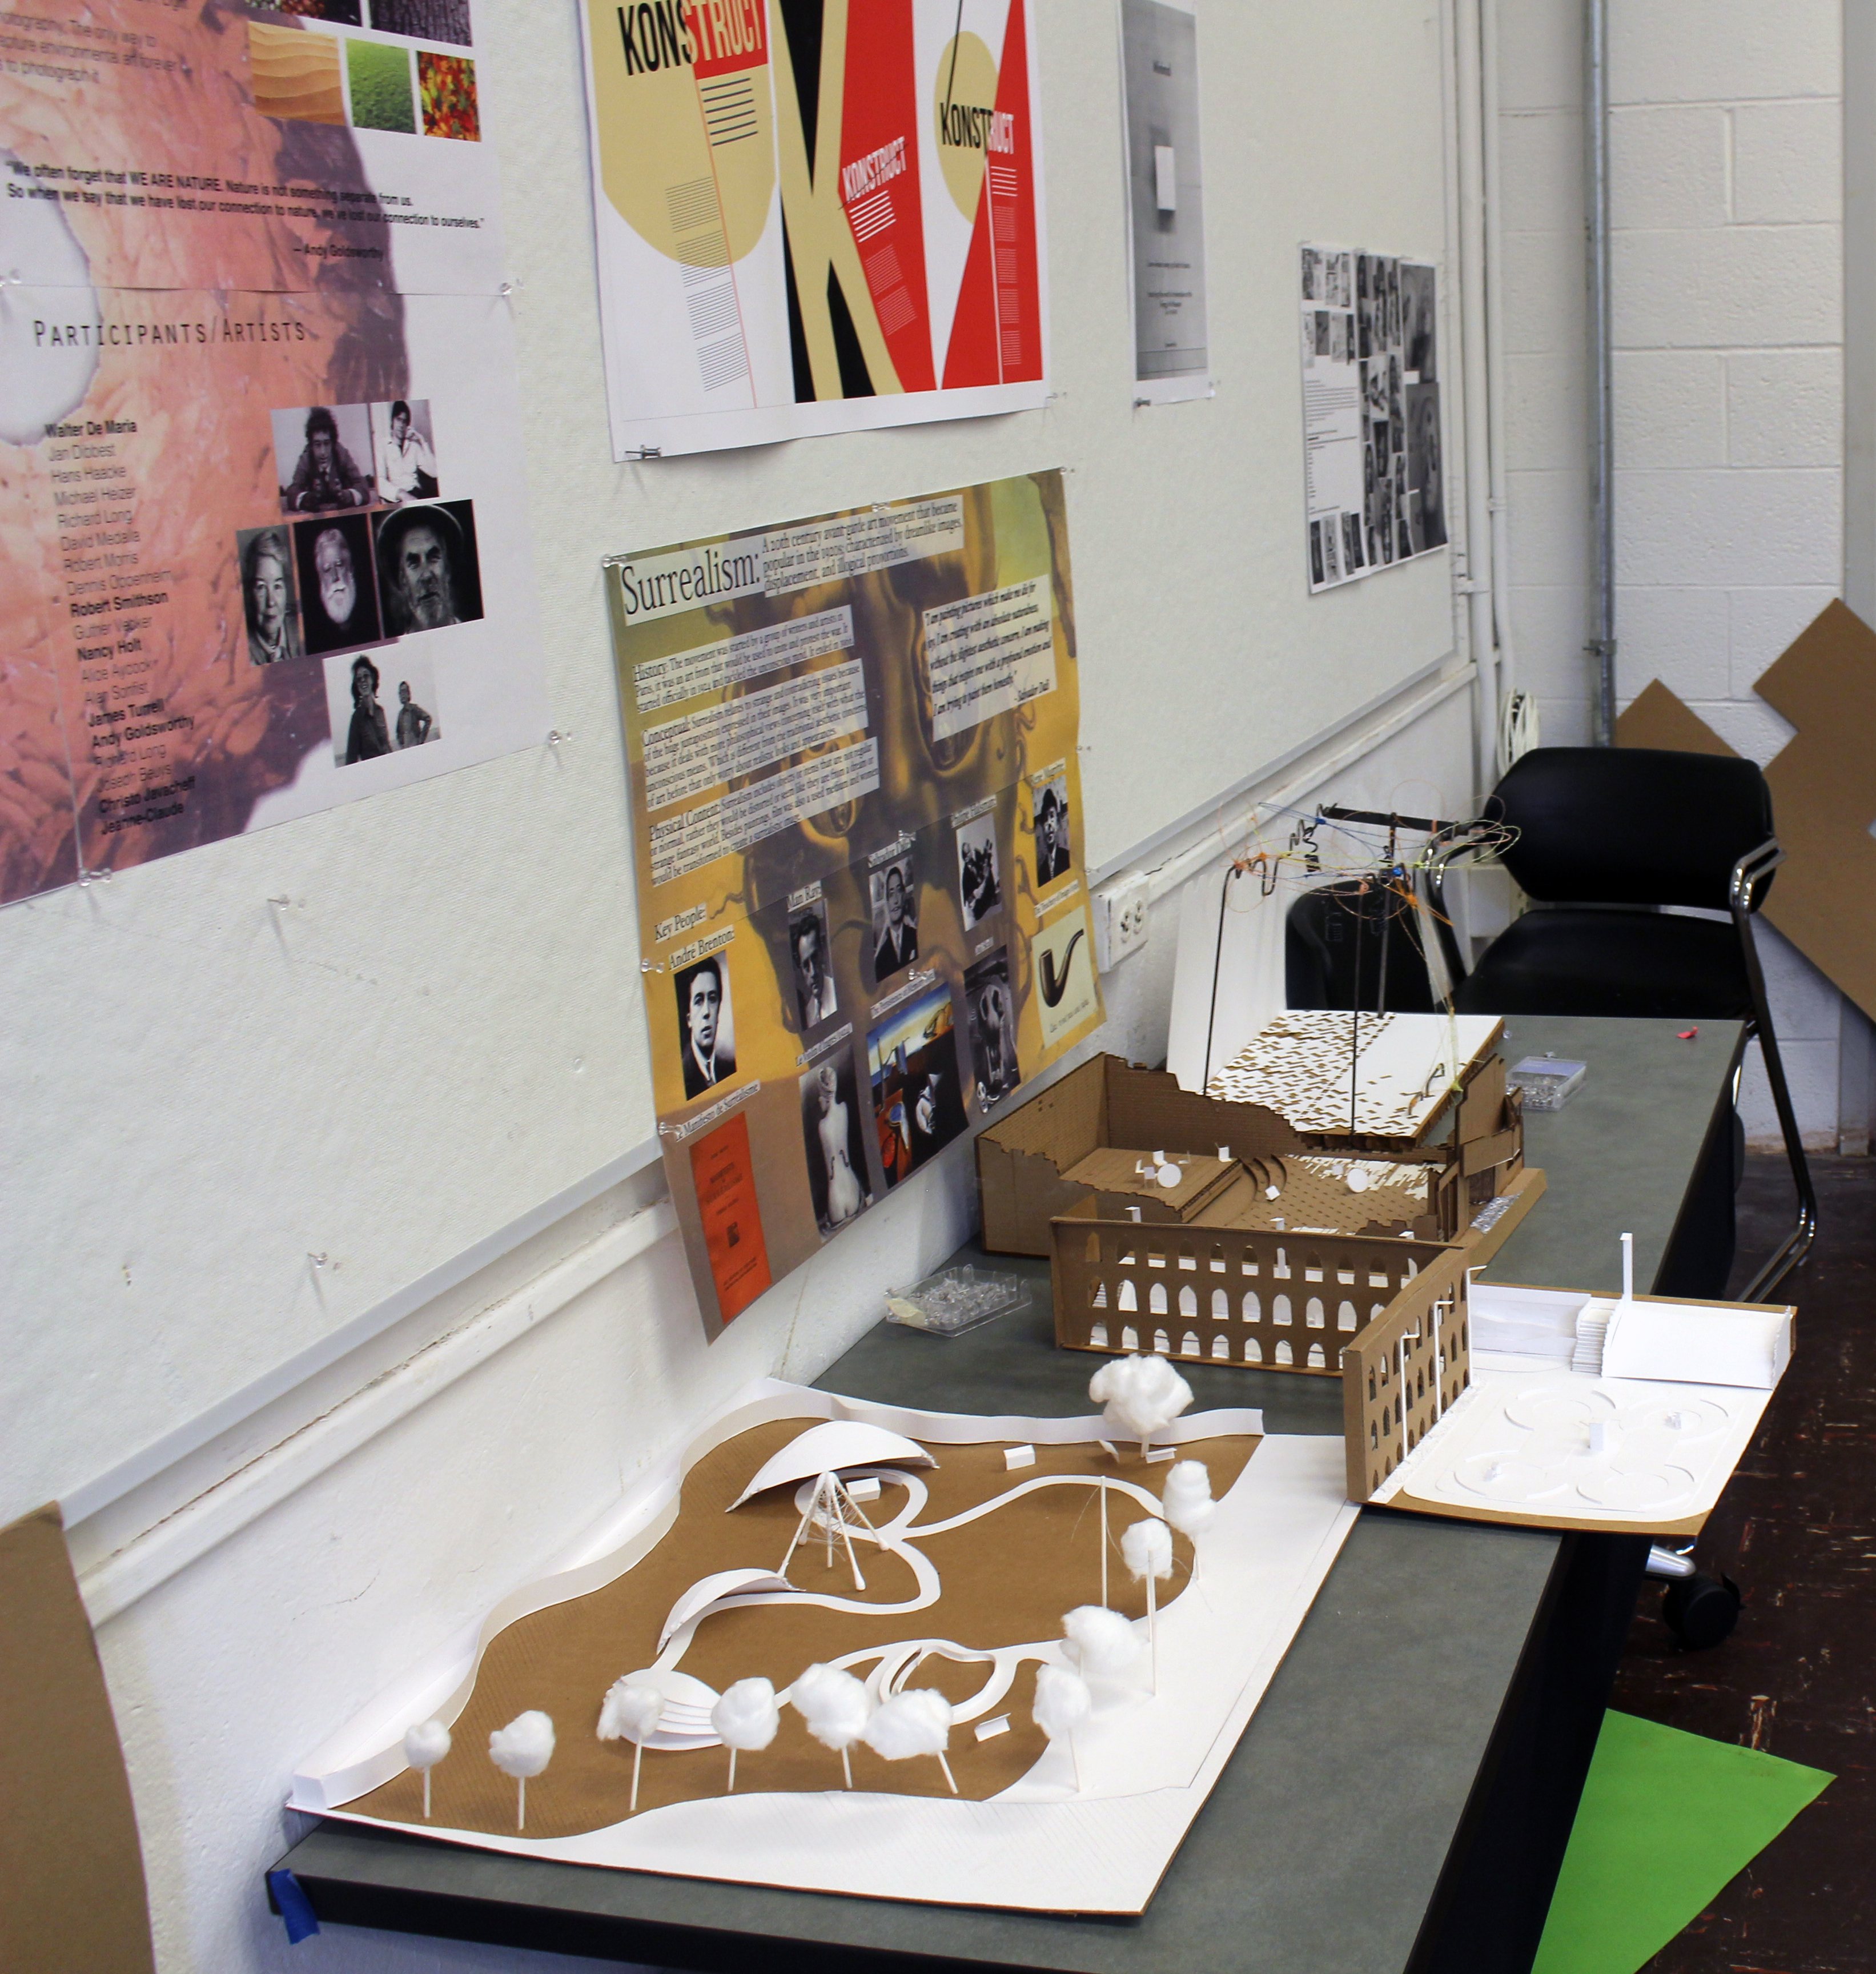 Student work from the accelerated first year summer studio.